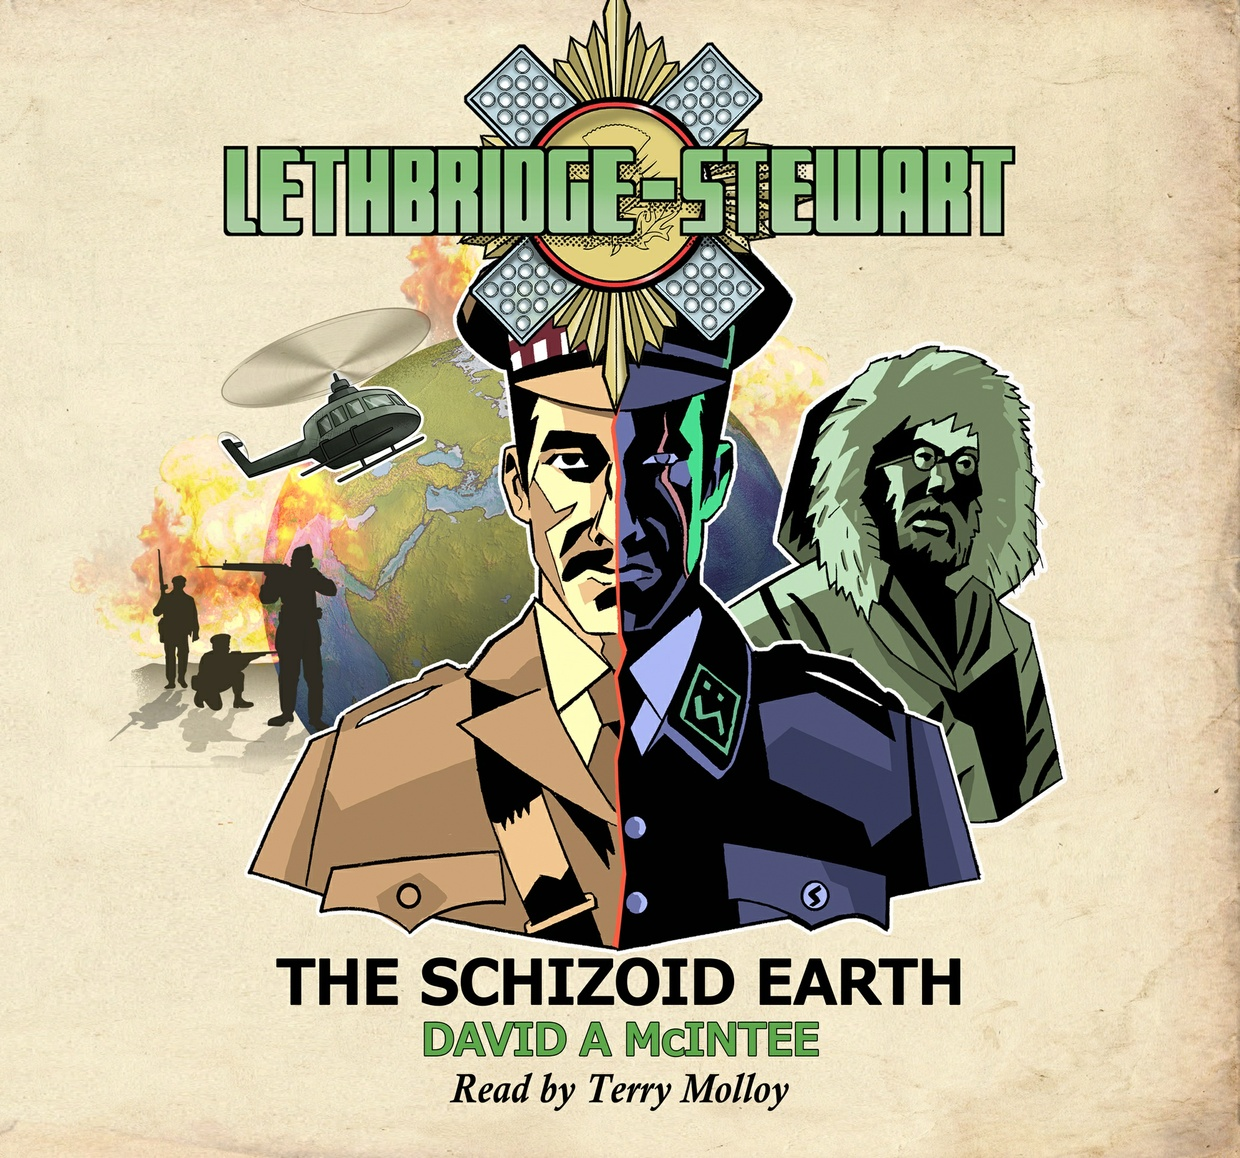 Lethbridge-Stewart: The Schzoid Earth